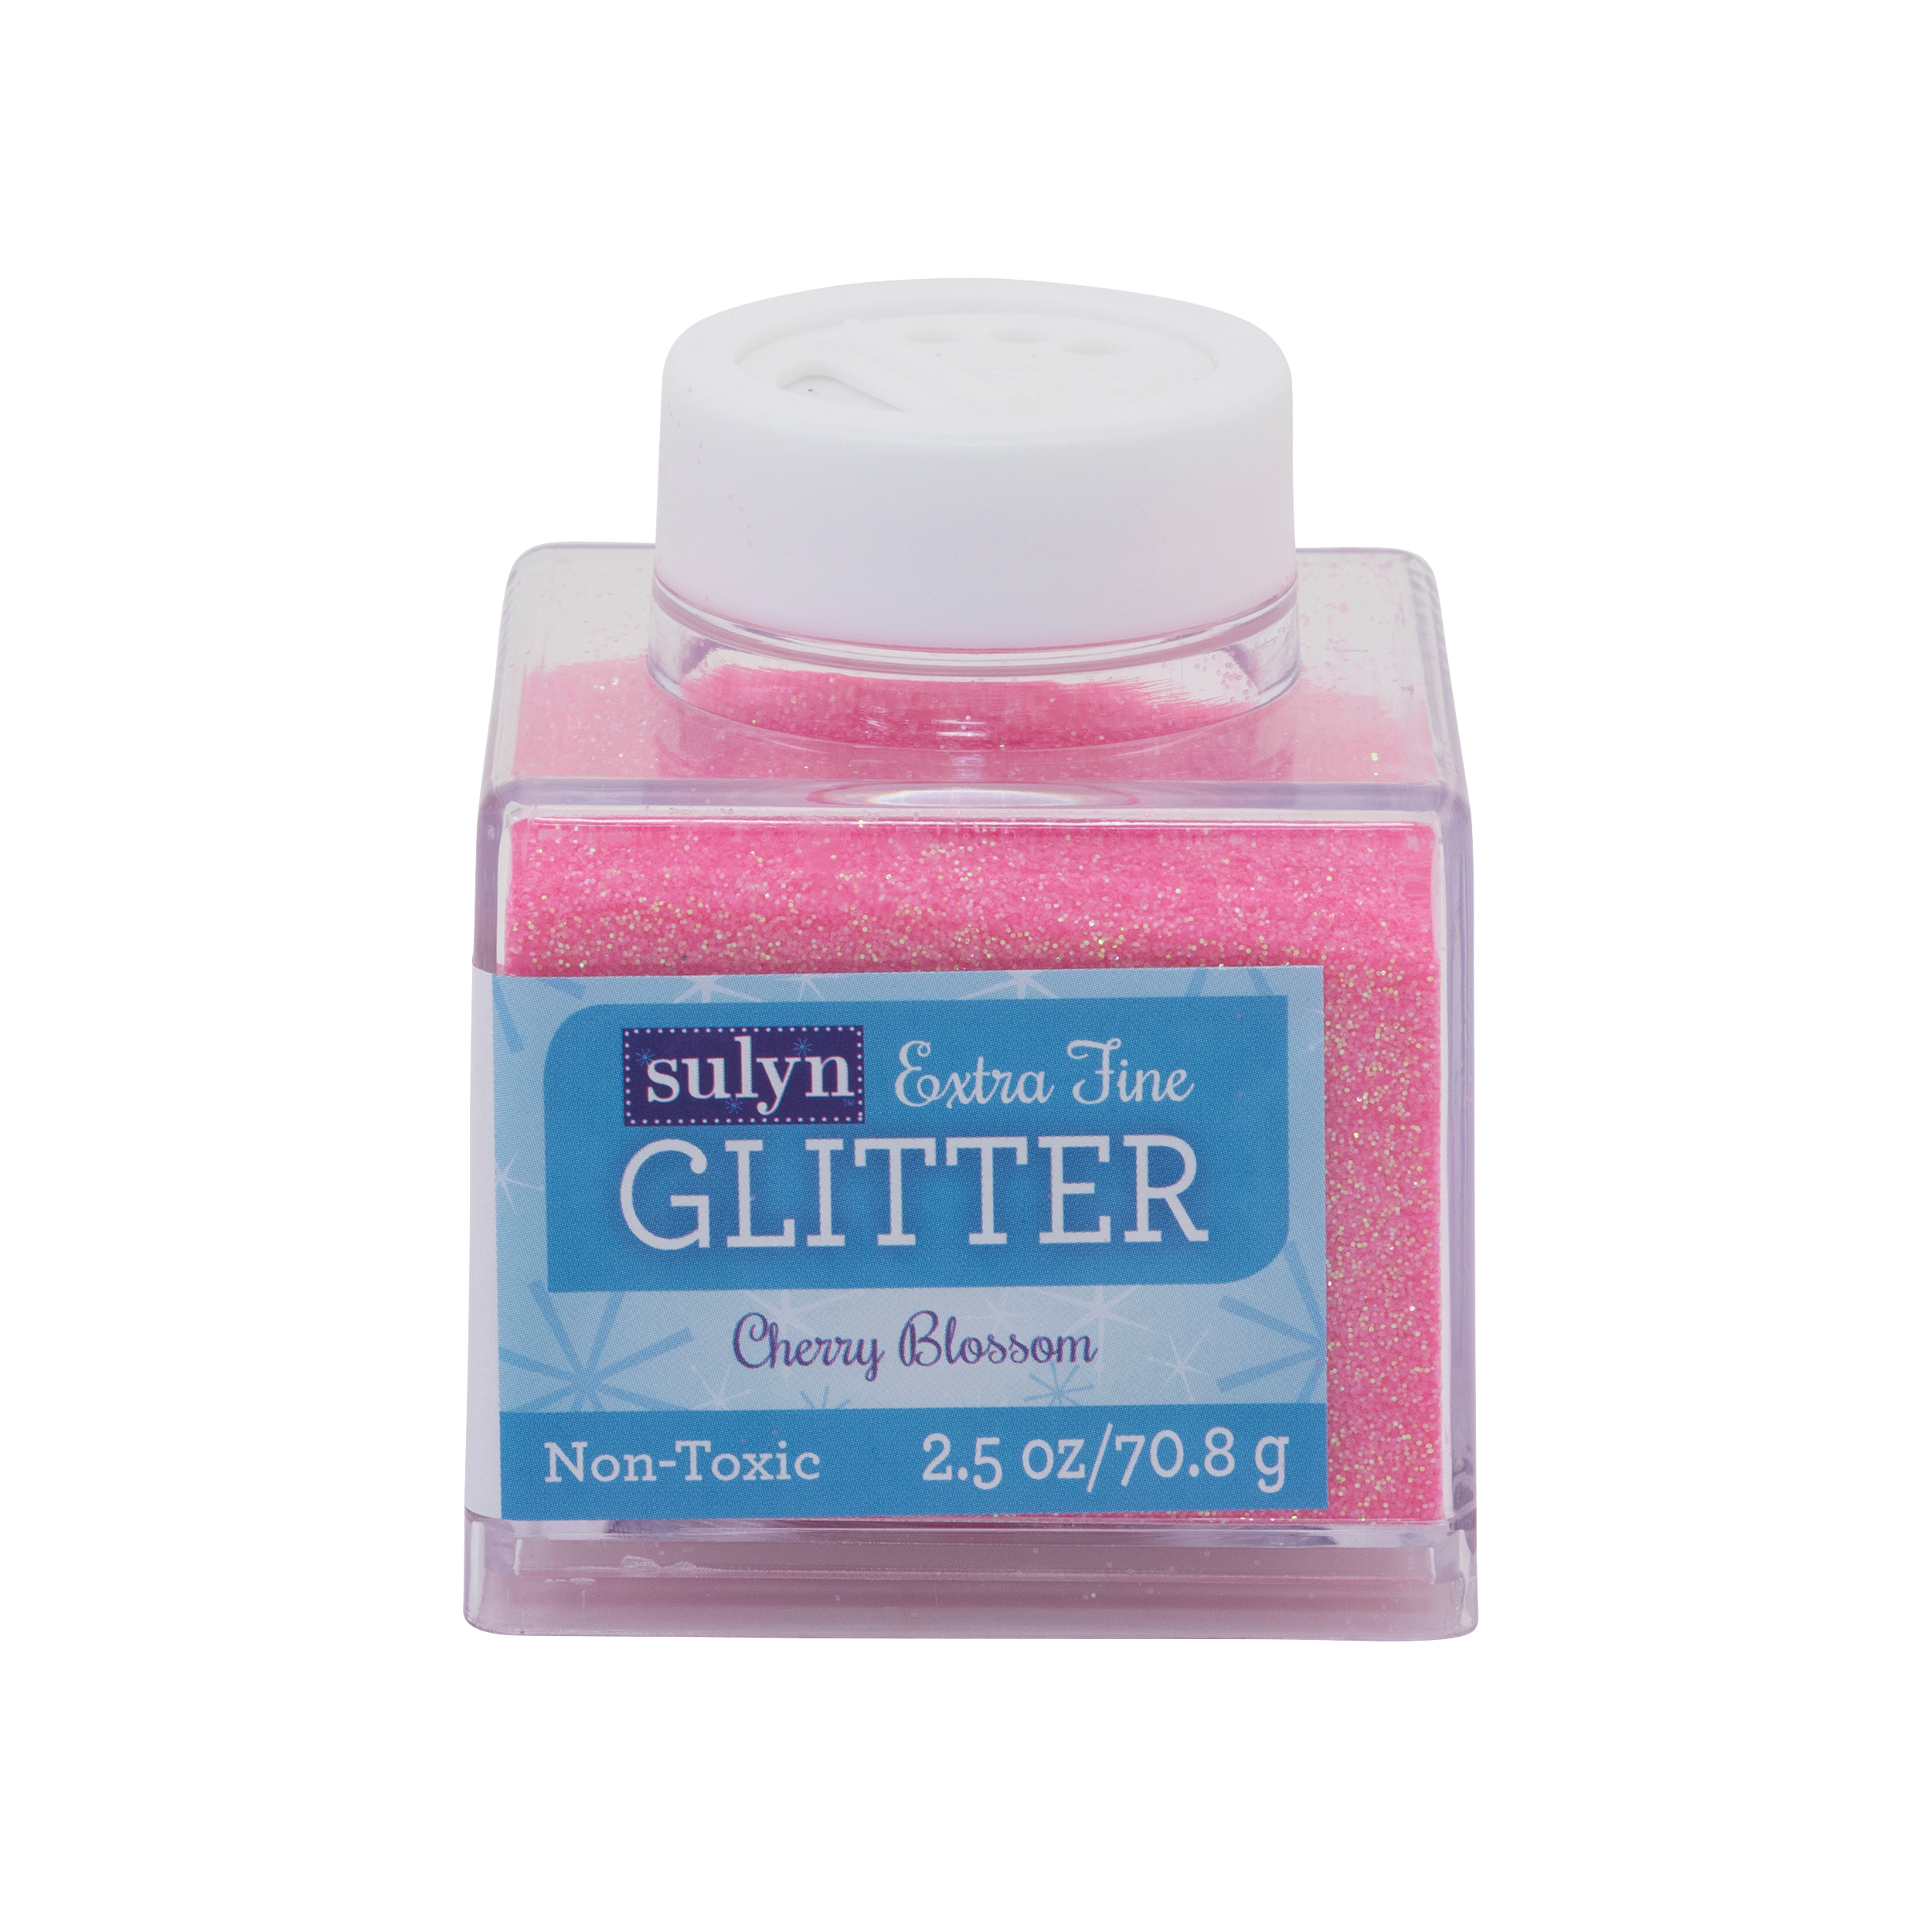 Sulyn Extra Fine Glitter, Cherry Blossom